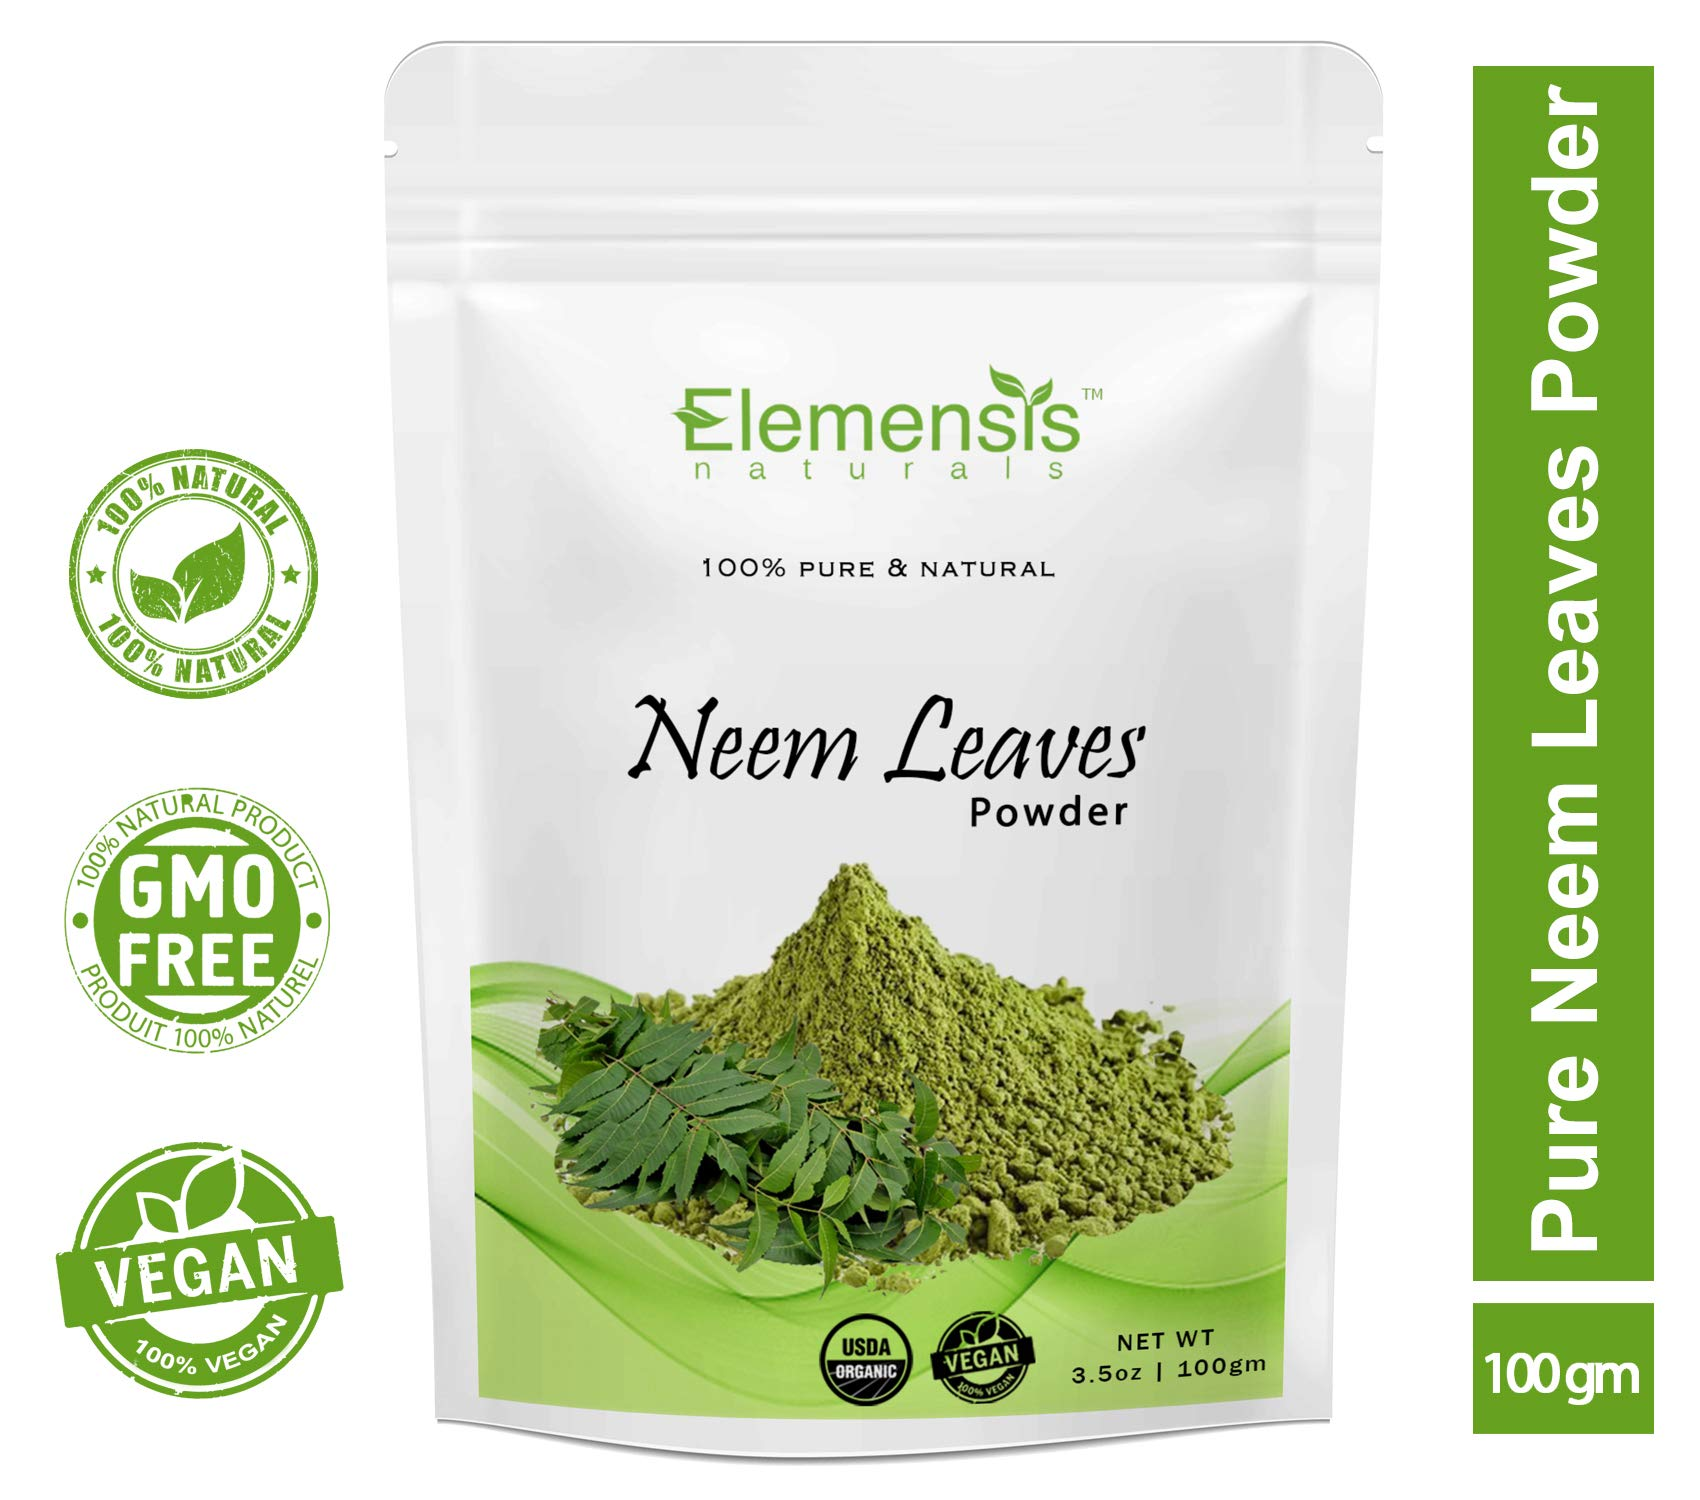 Elemensis Naturals 100% Pure & Natural Neem Leaves Powder for Pimple